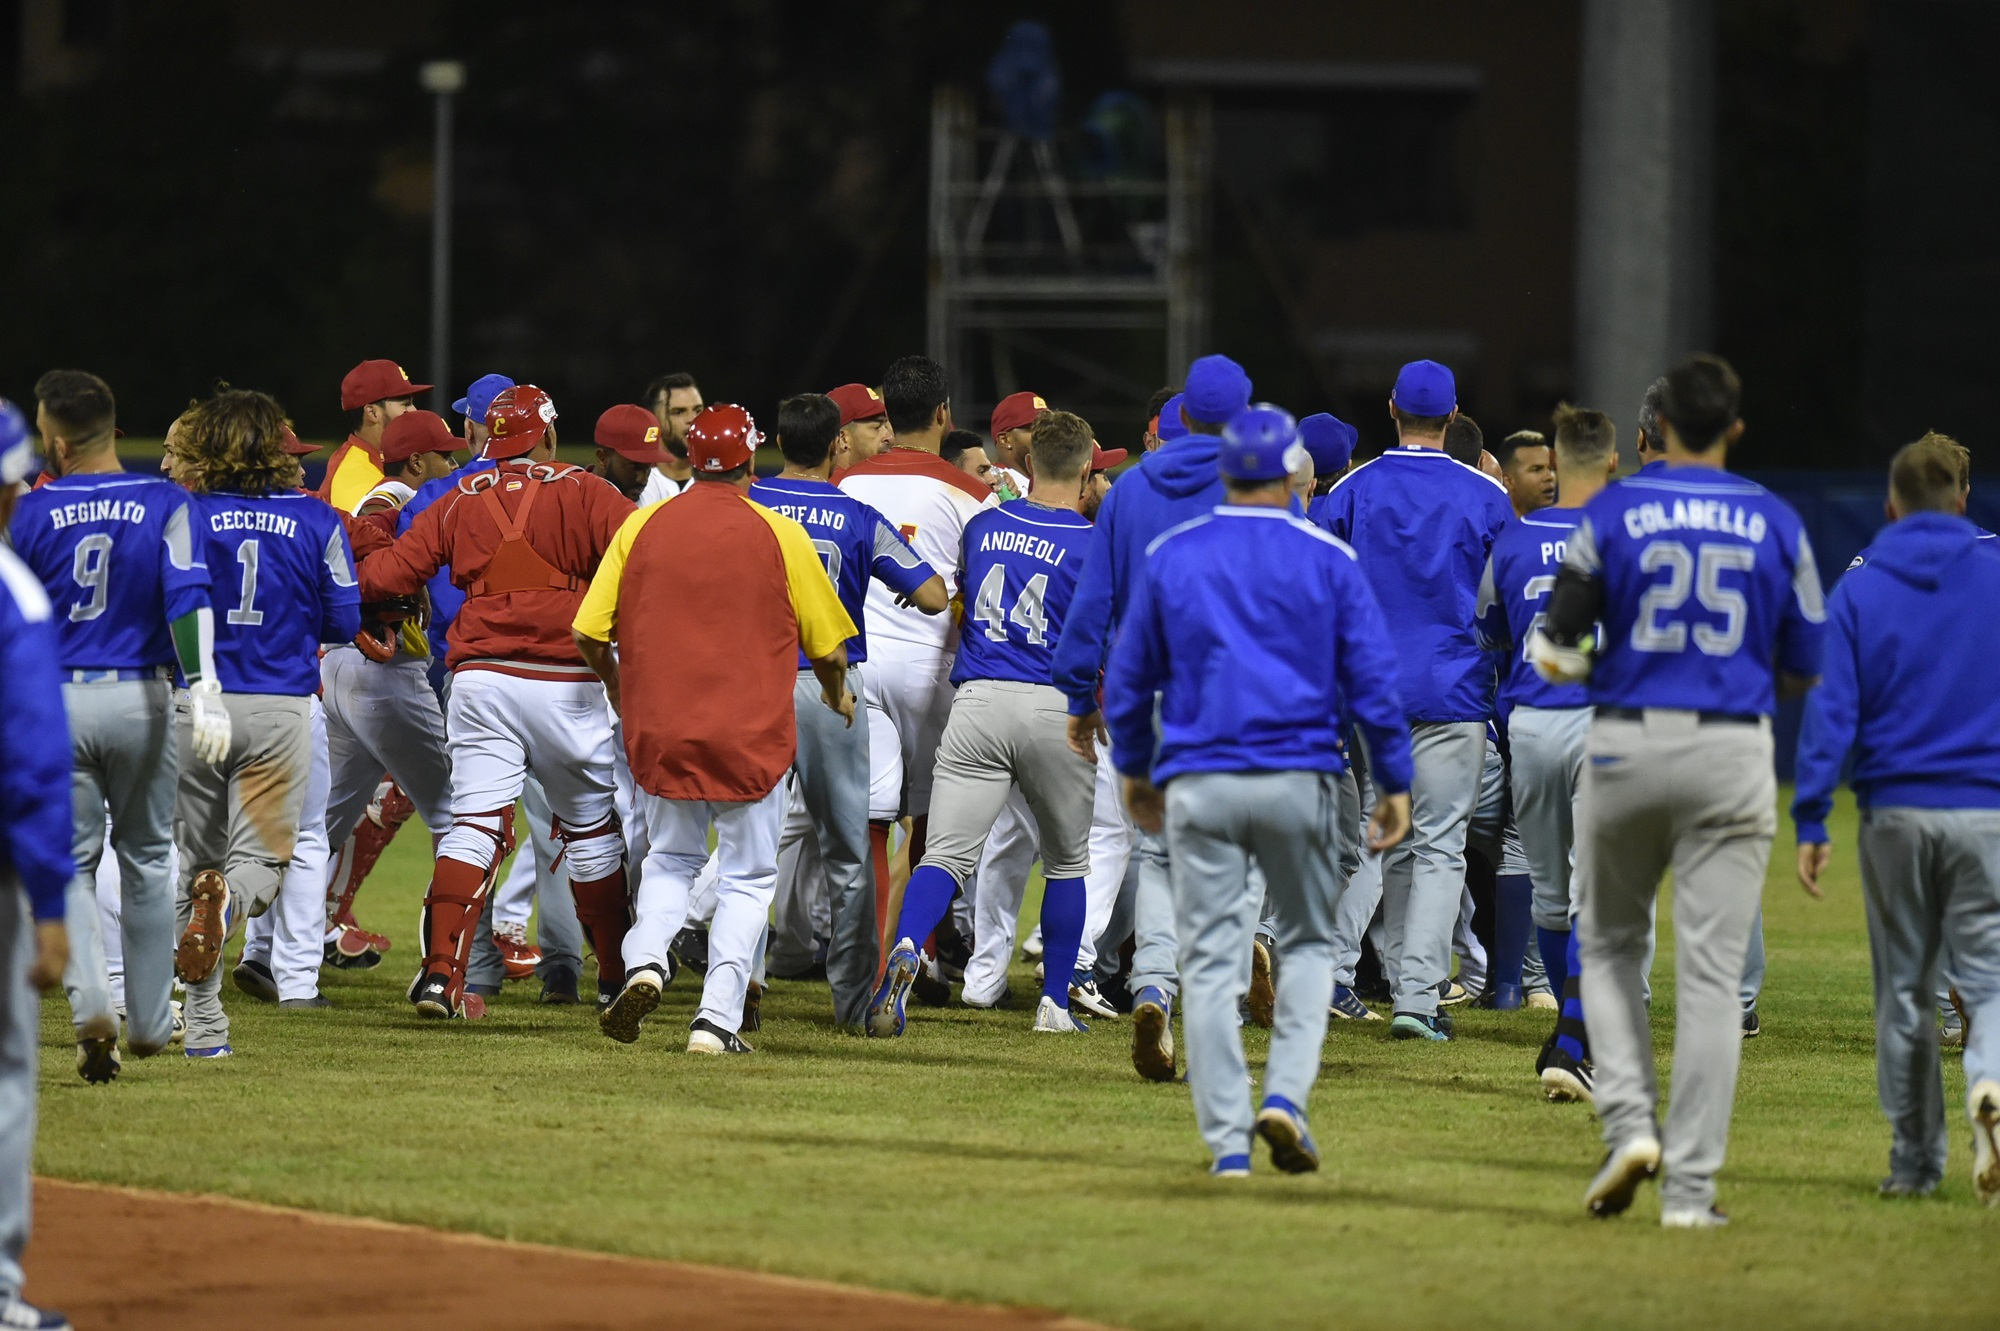 The game ended with a bench and bullpen clearing brawl